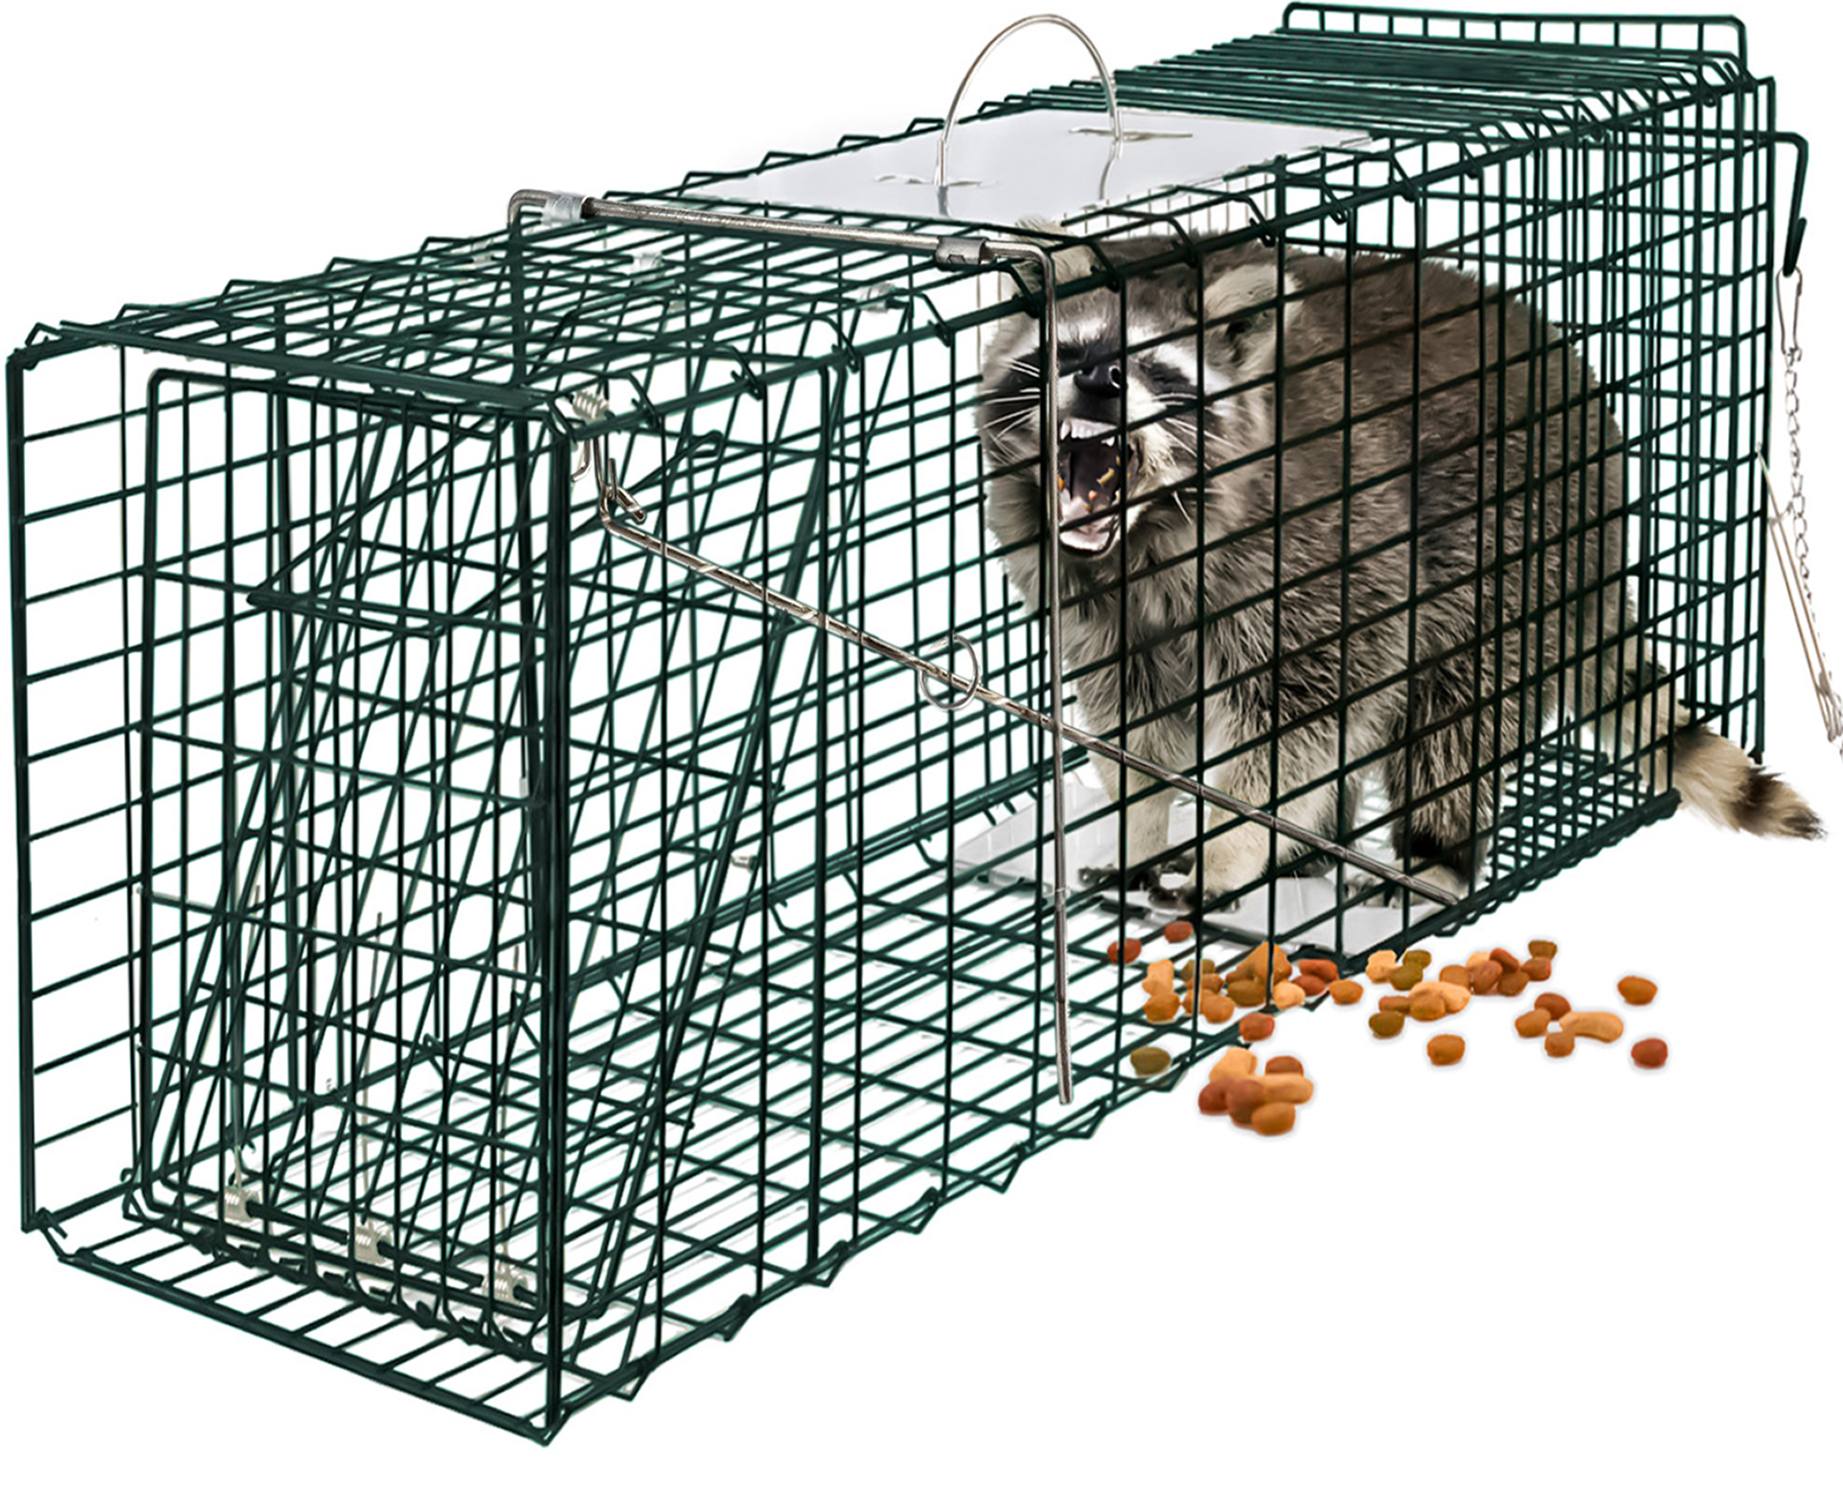 32/'/' Humane Live Animal Trap 1 Door Rodent Cage for Rabbits Cat Raccoon Squirrel